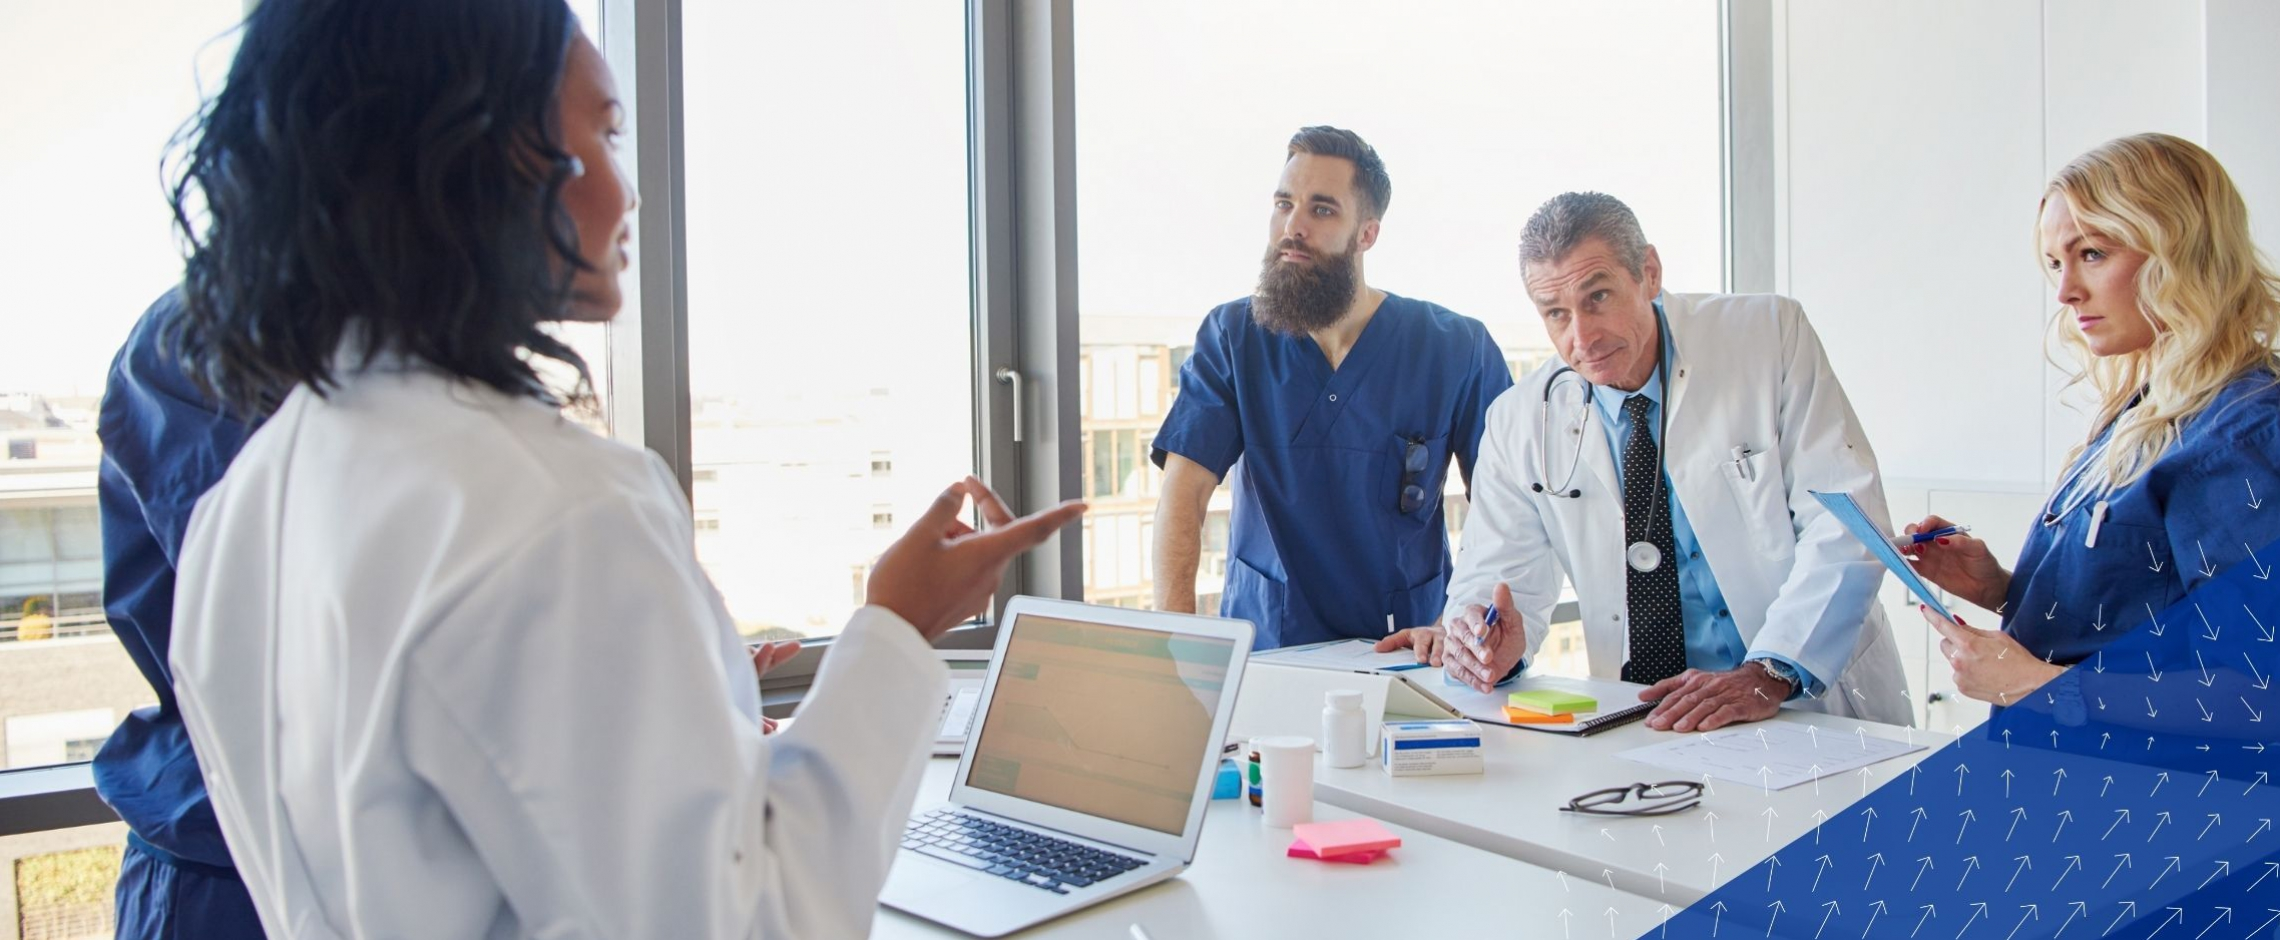 Physician assistant leading a team of physicians